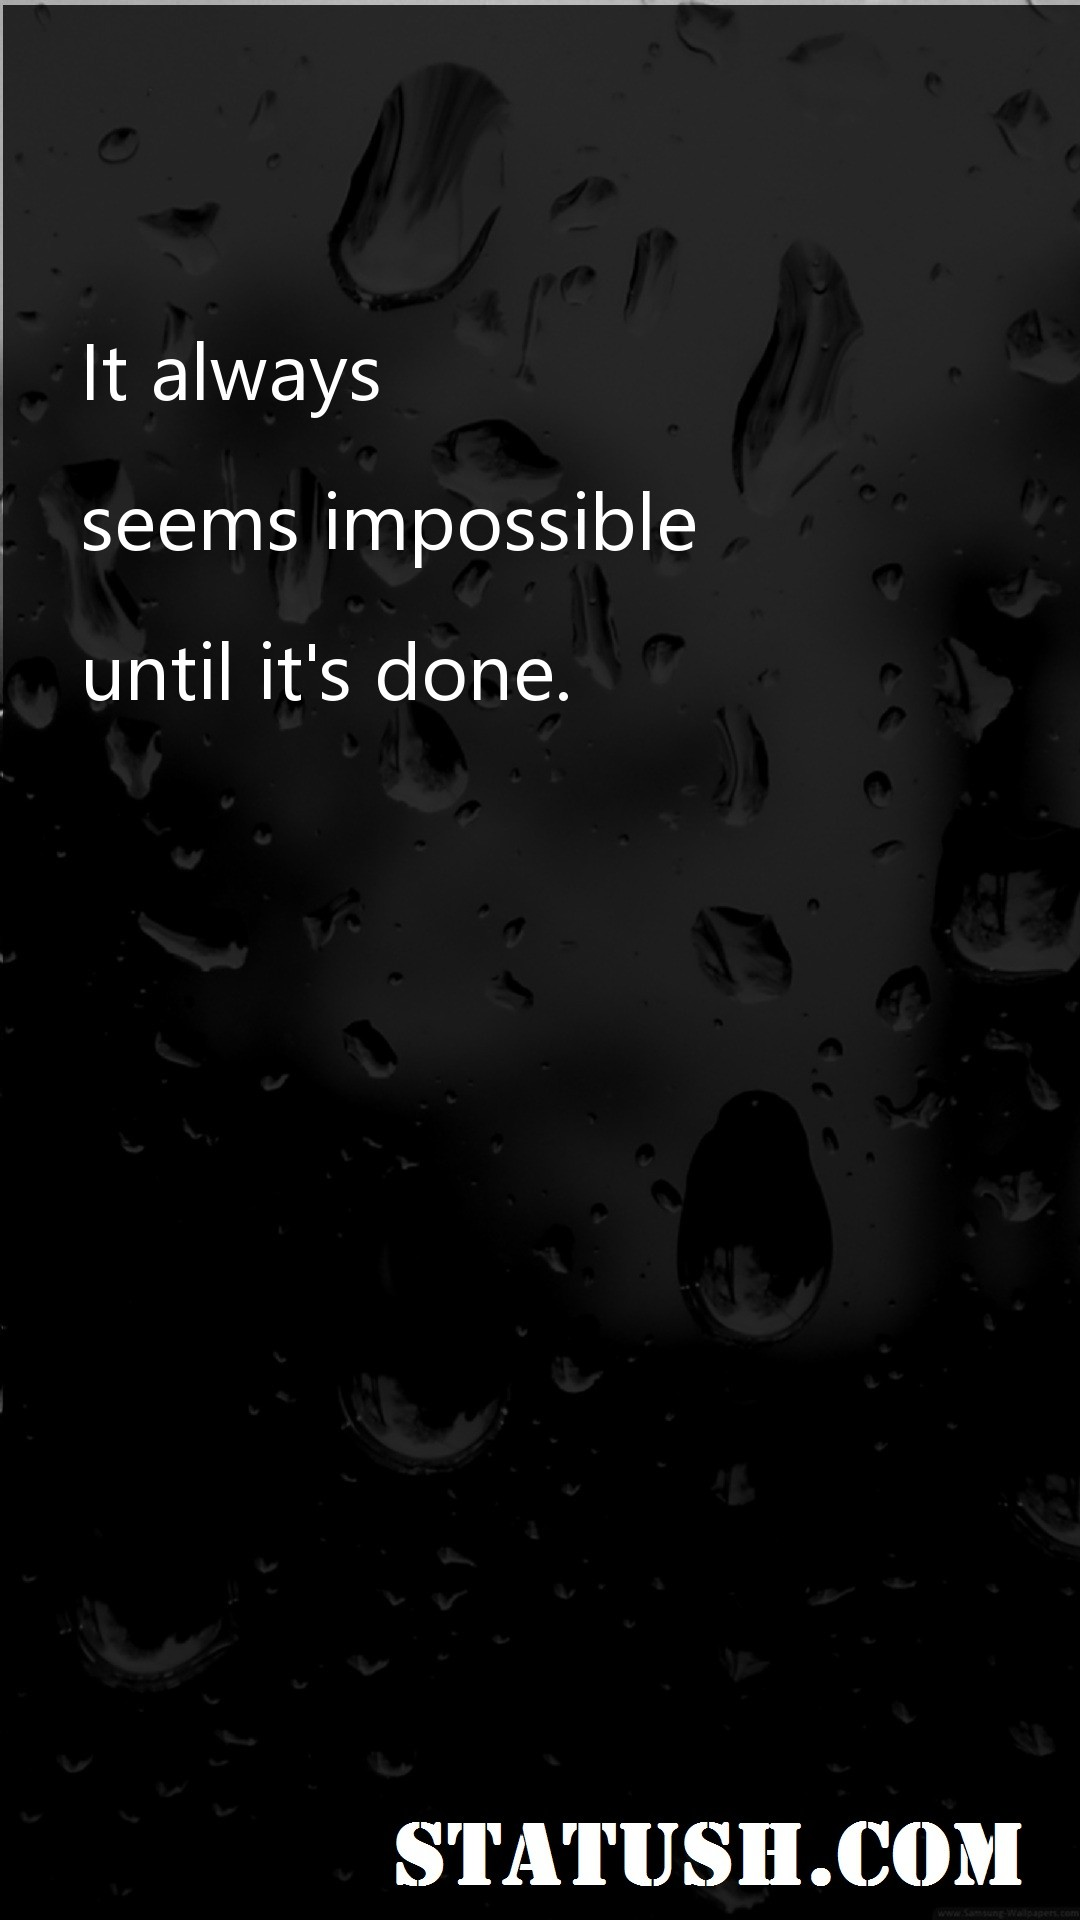 It always seems impossible